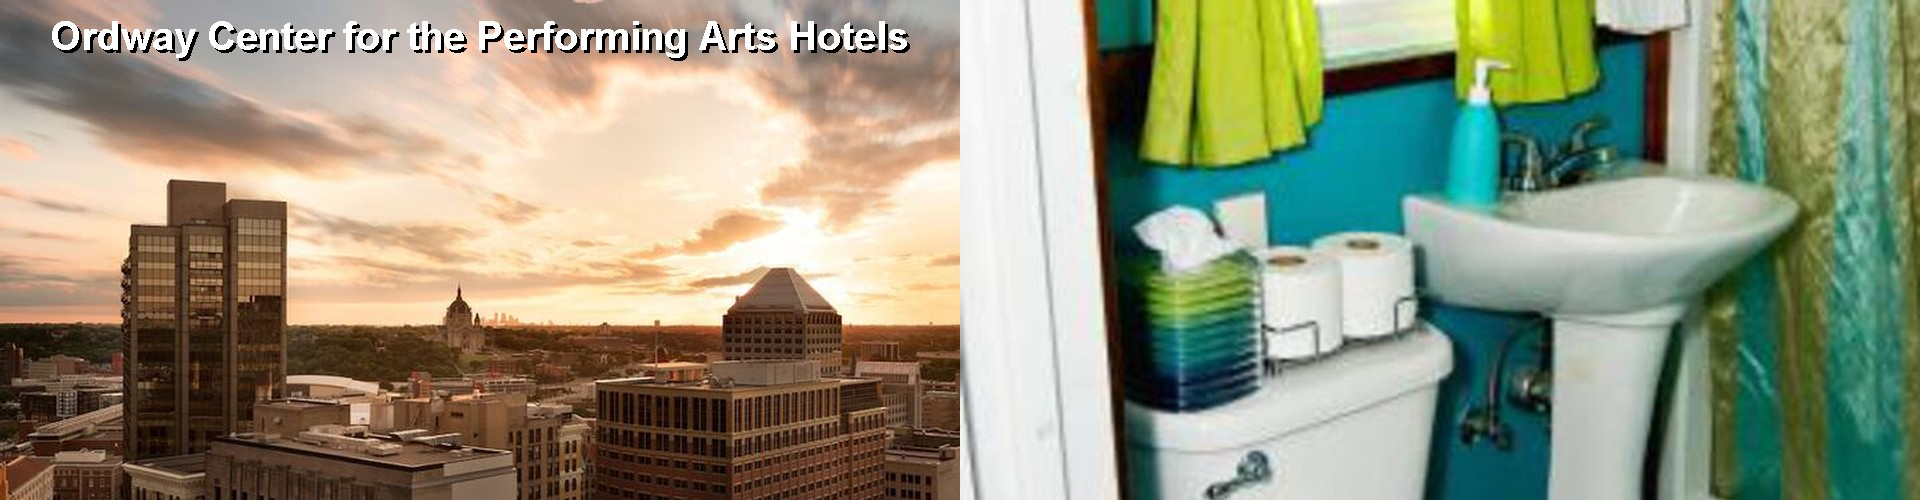 5 Best Hotels near Ordway Center for the Performing Arts